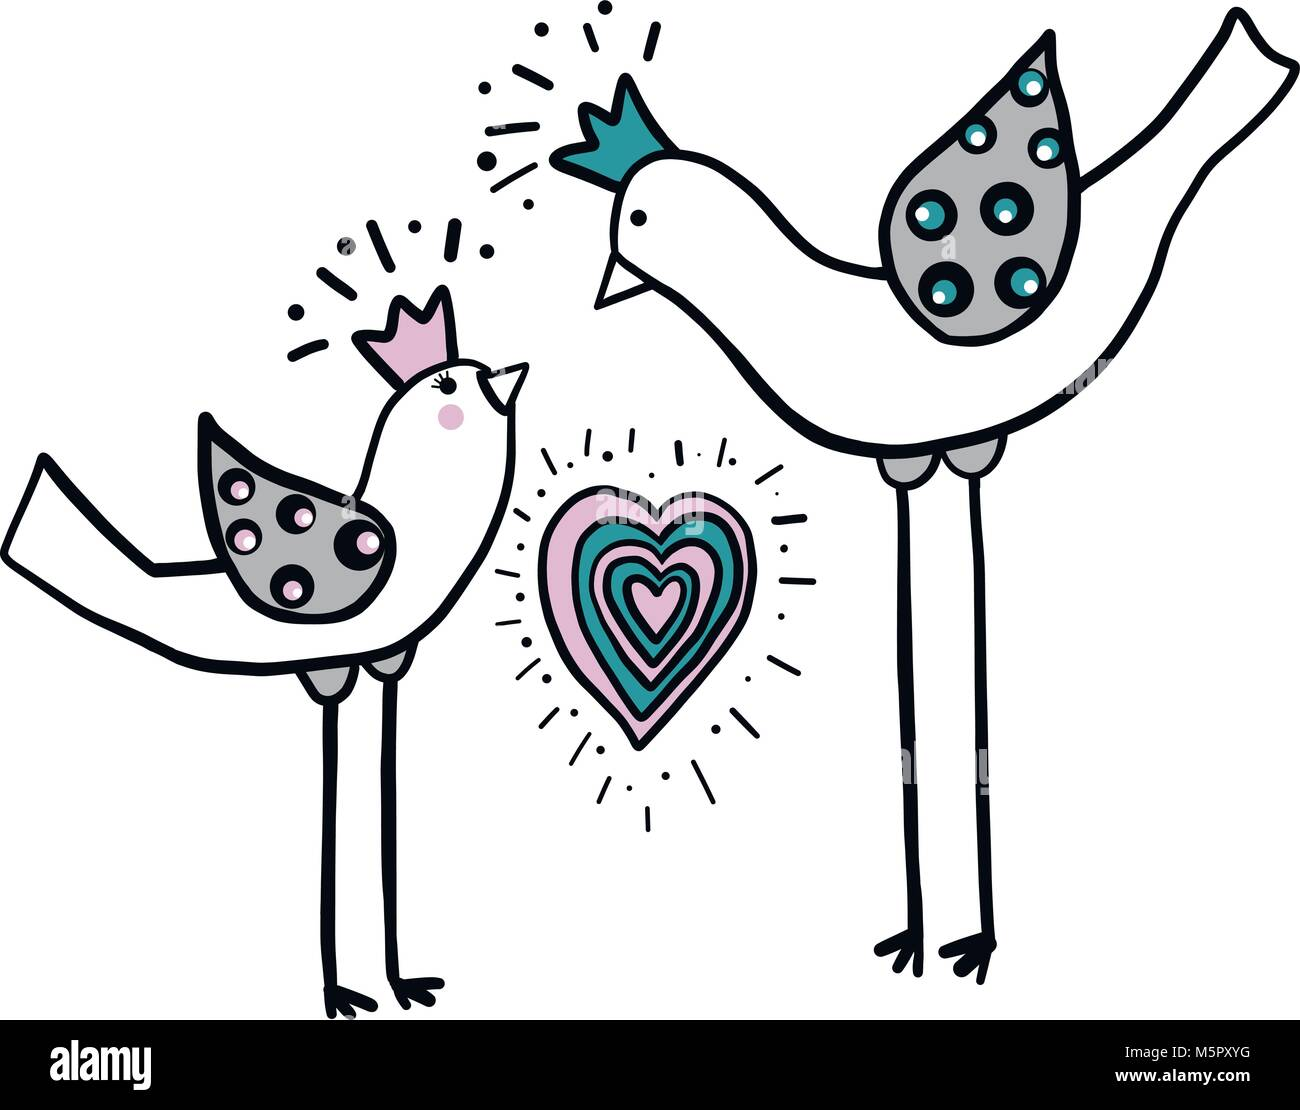 Minimalistic Simple Drawing Of Two Love Birds With Heart With Color Stock Vector Image Art Alamy